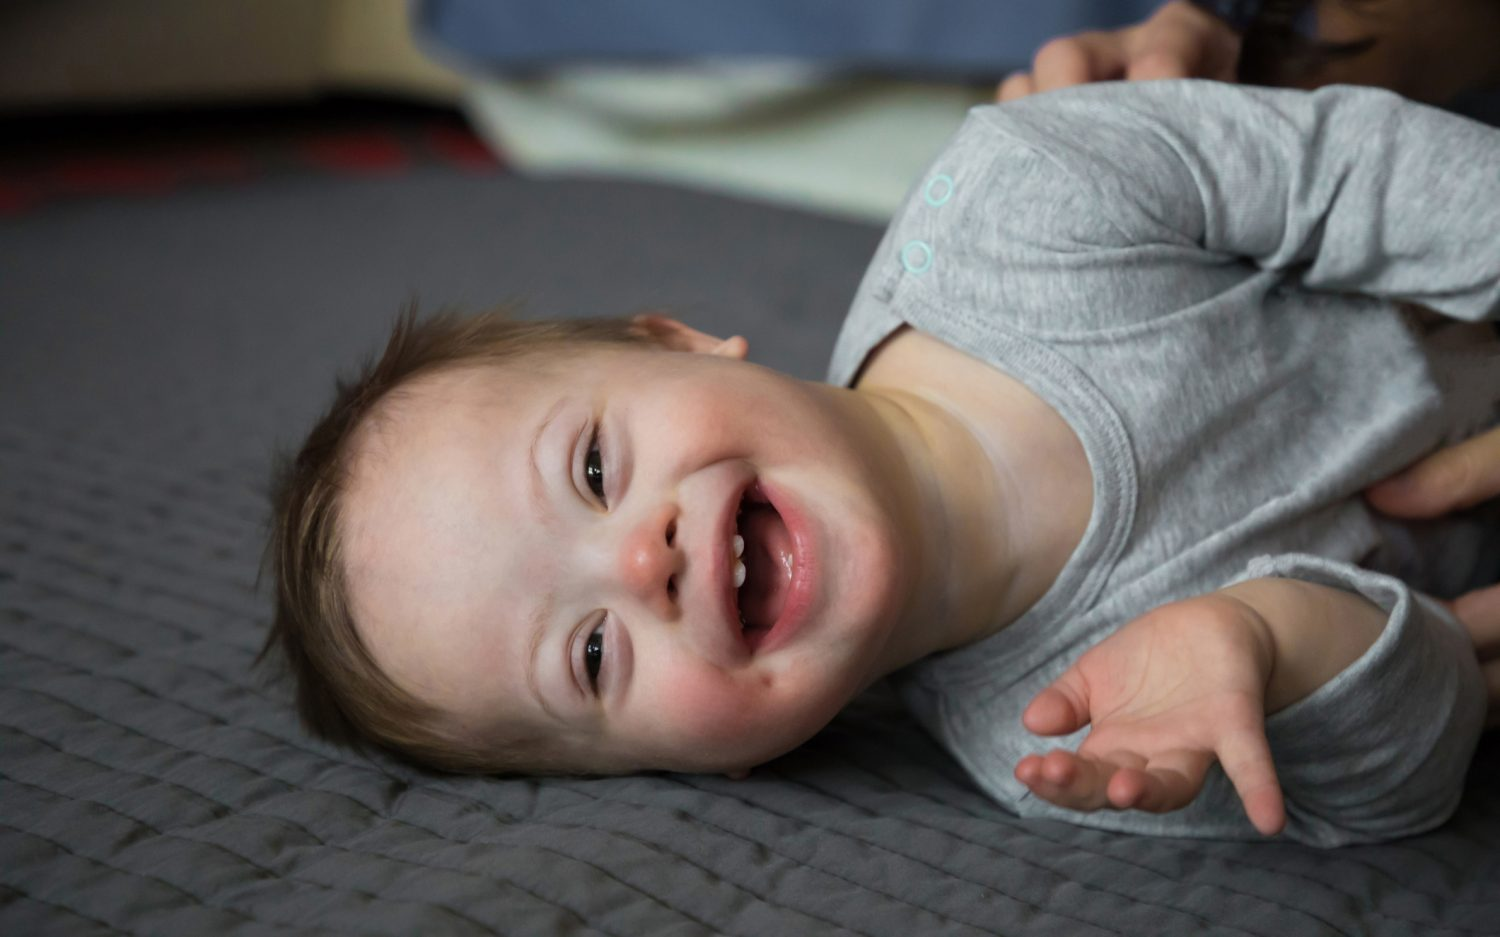 Down syndrome in the courts